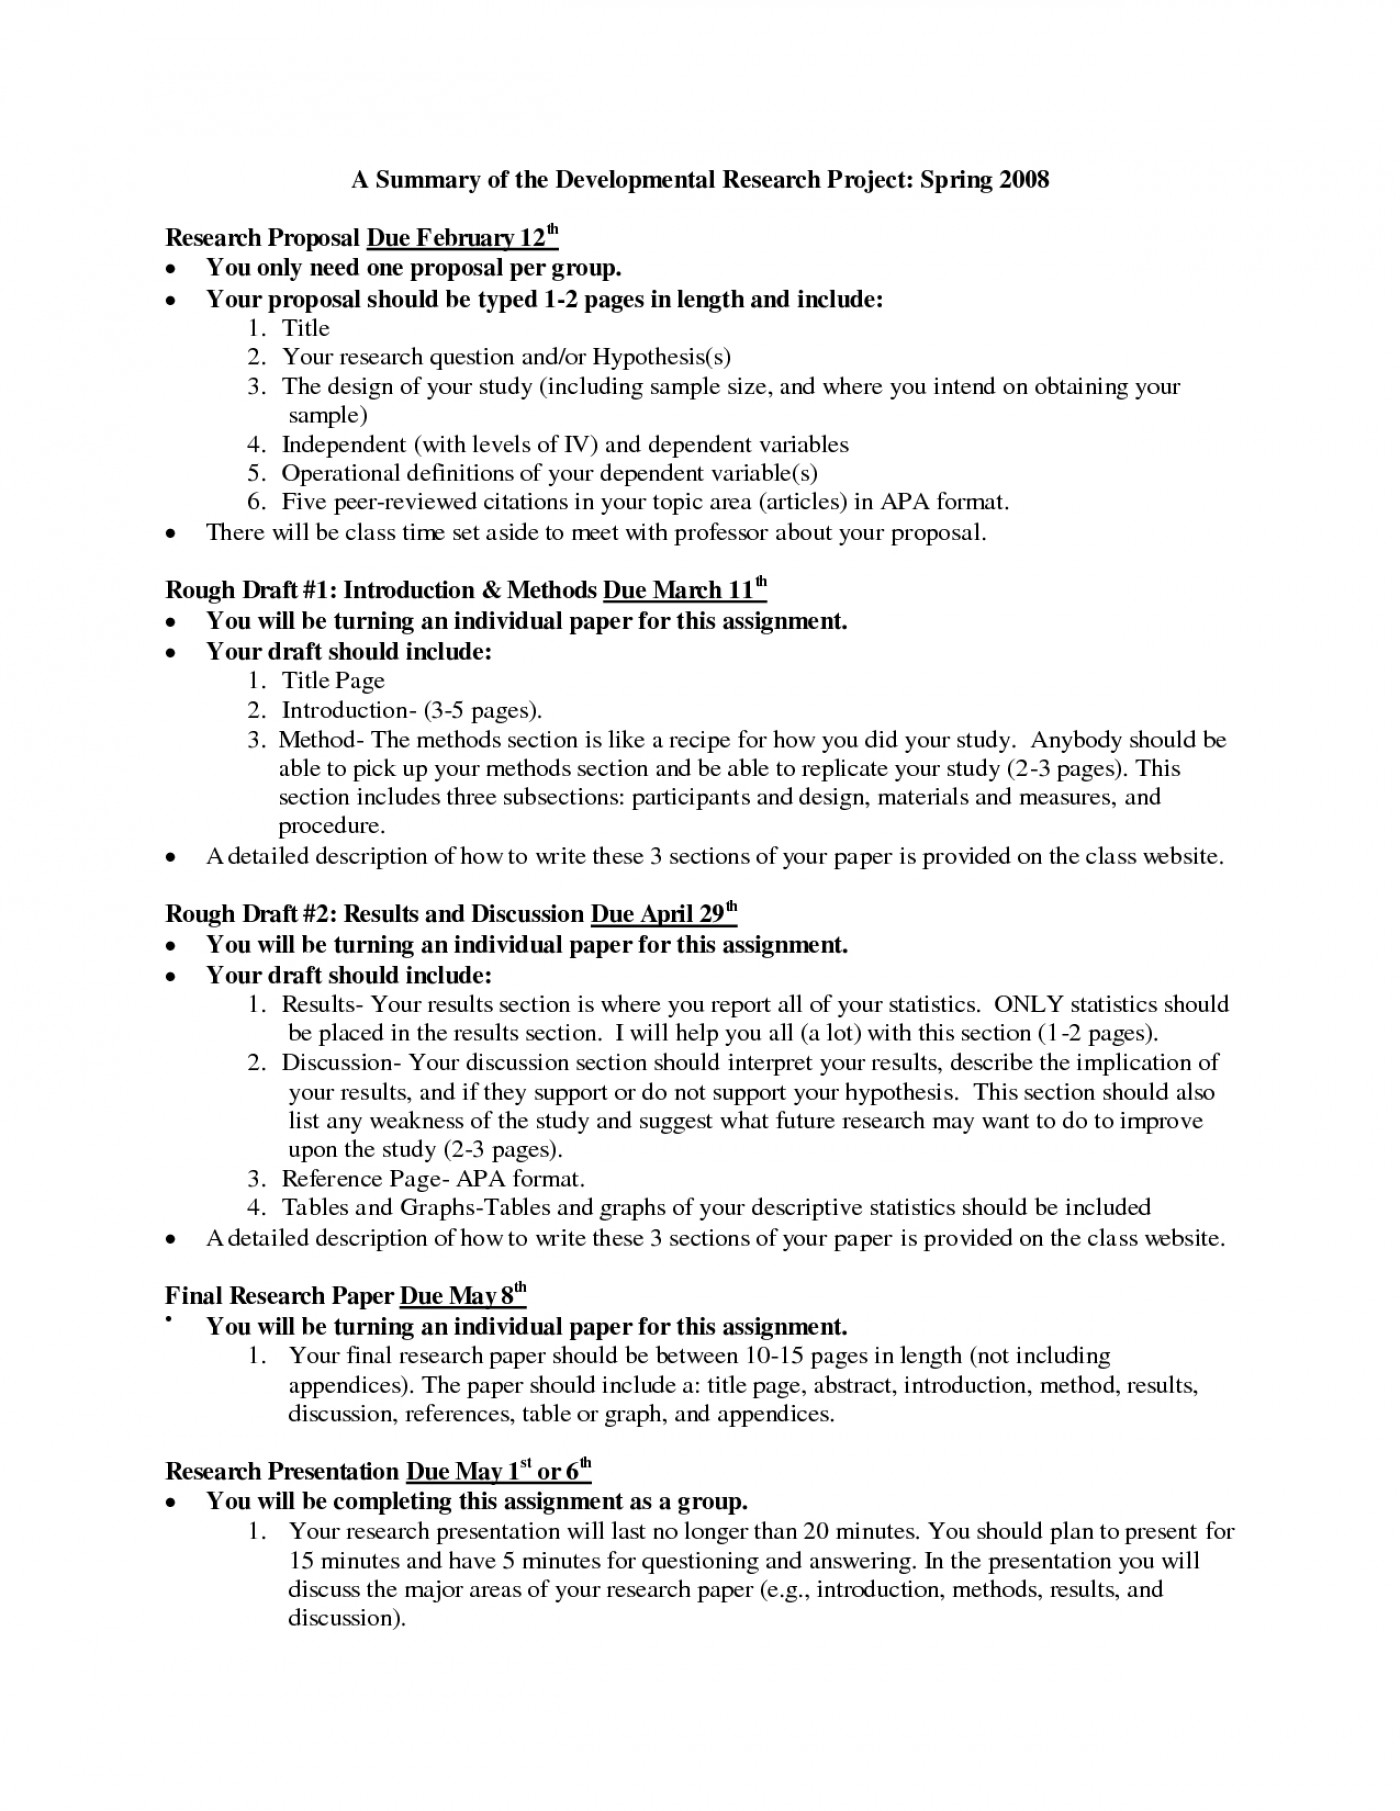 012 Good Research Paper Topic Psychology Undergraduate Resume Unique Sample Singular Topics History Reddit Argumentative About Sports 1400